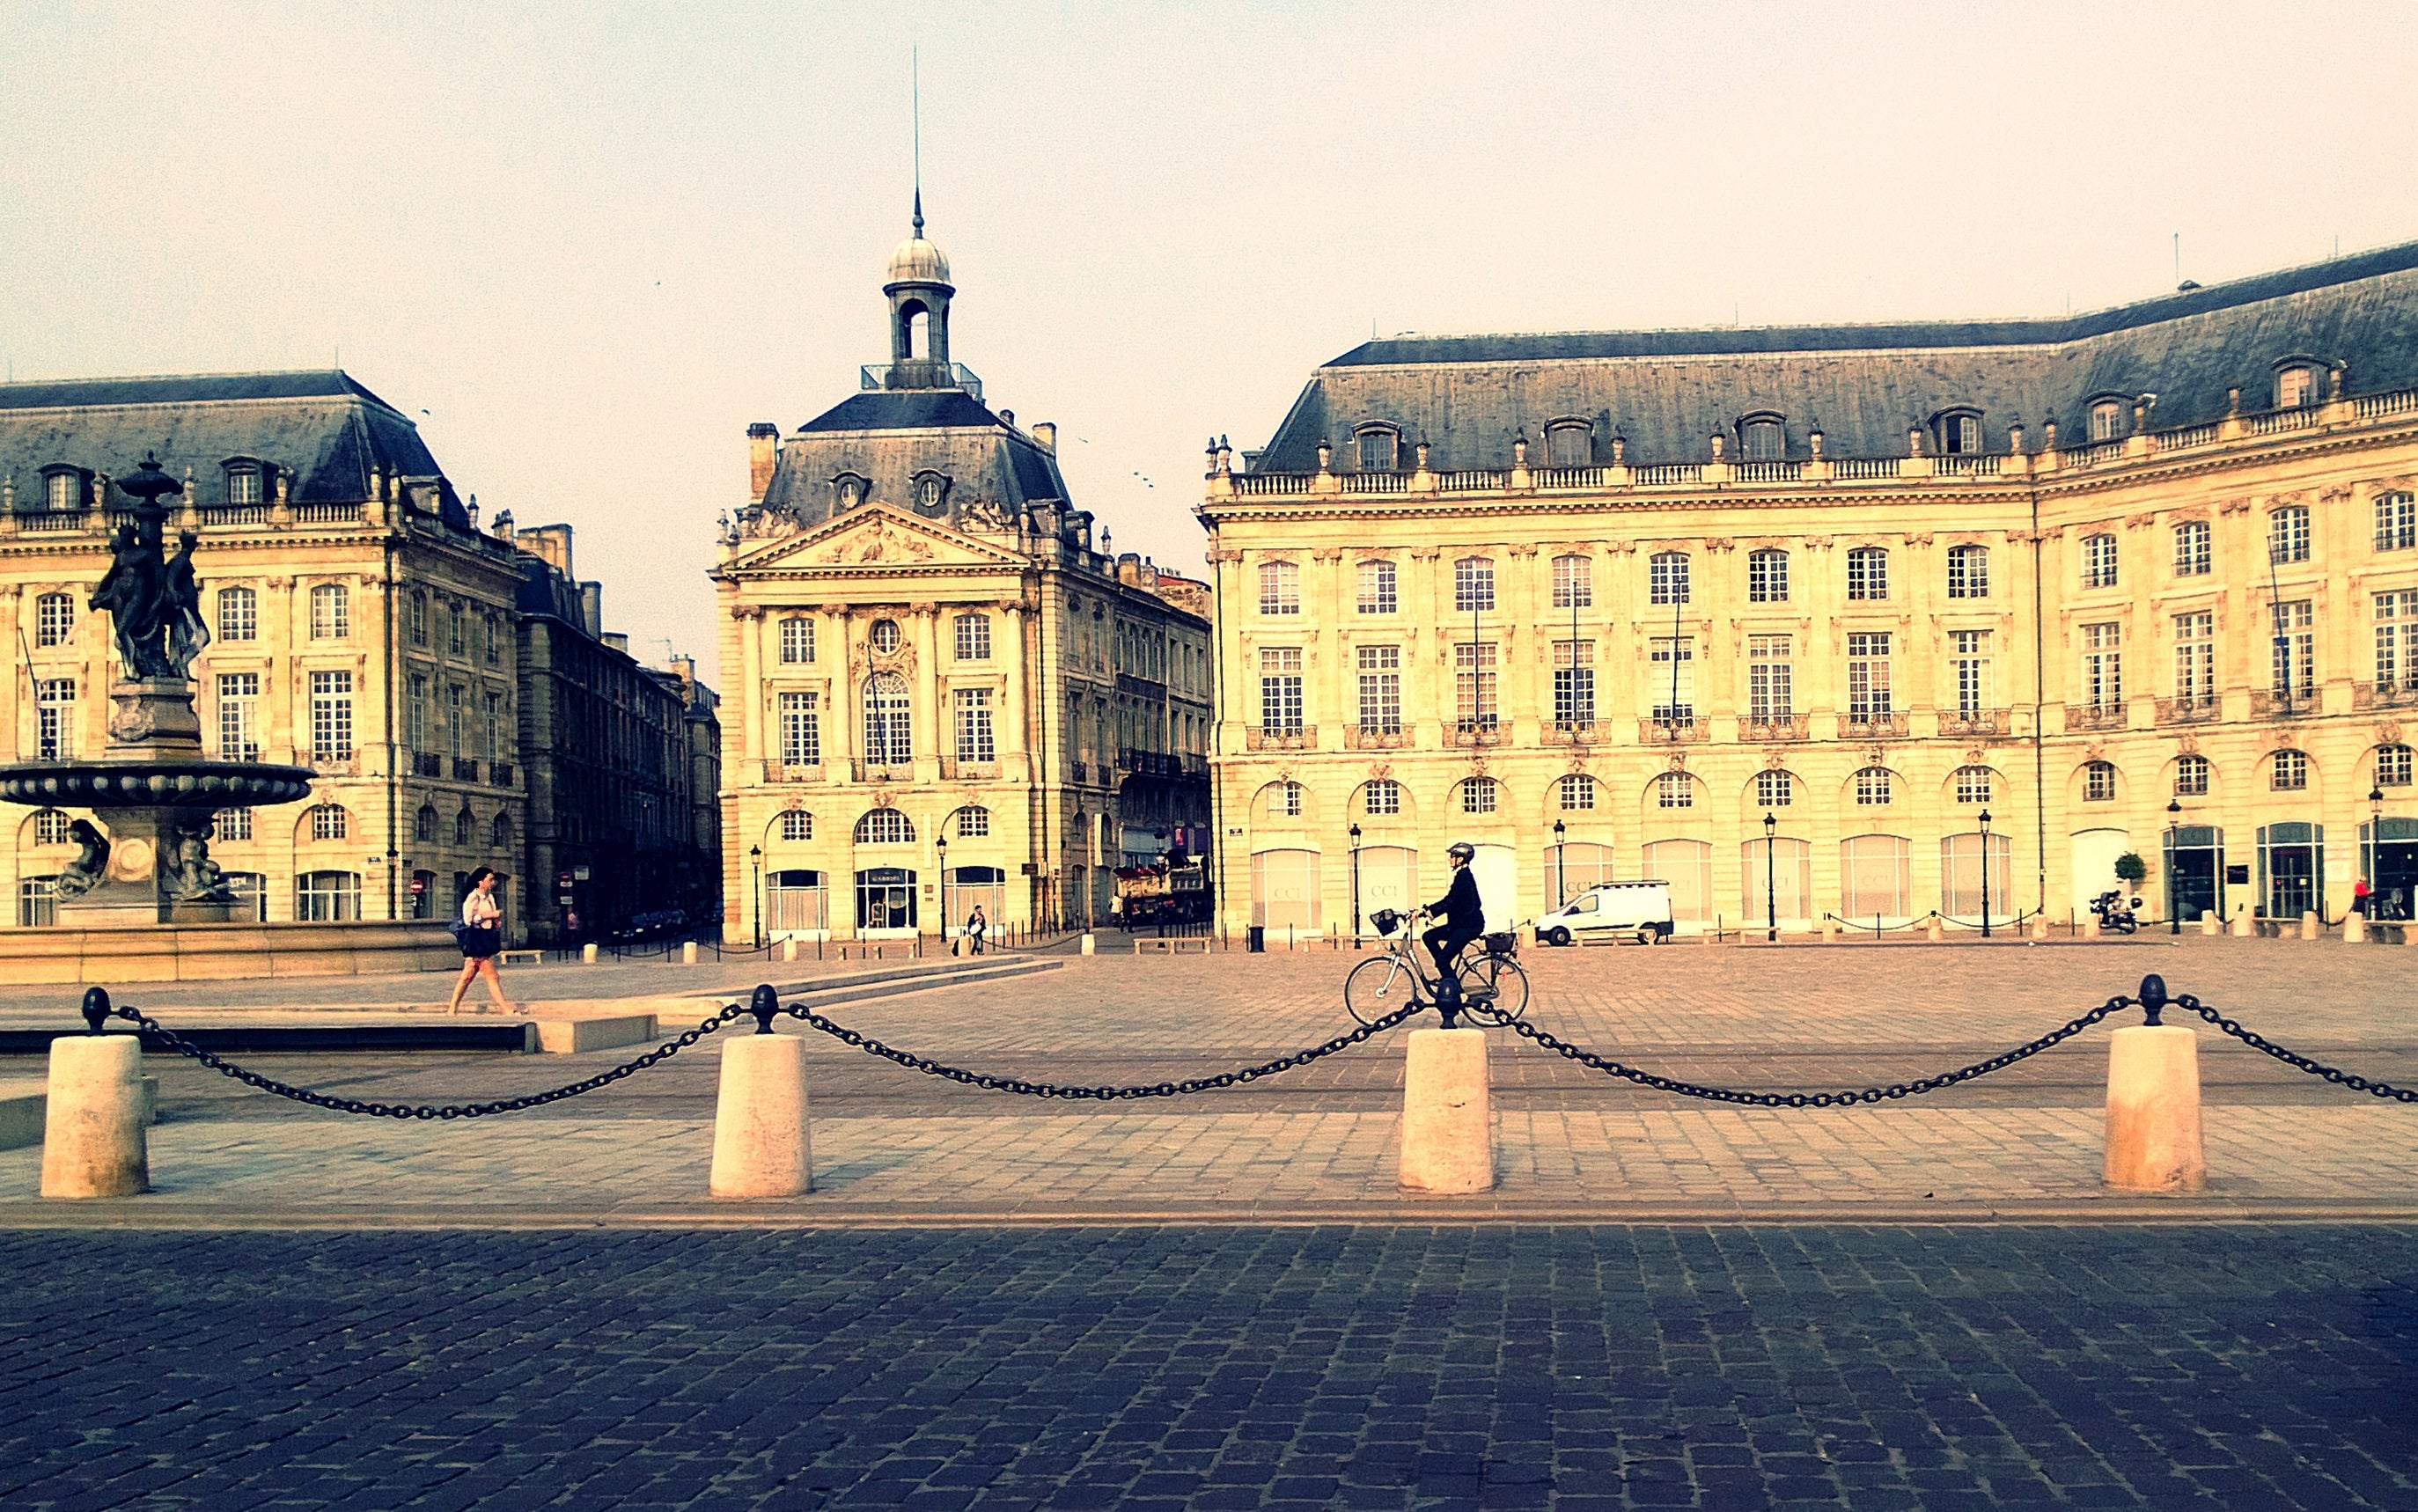 Plaza en Place de la Bourse